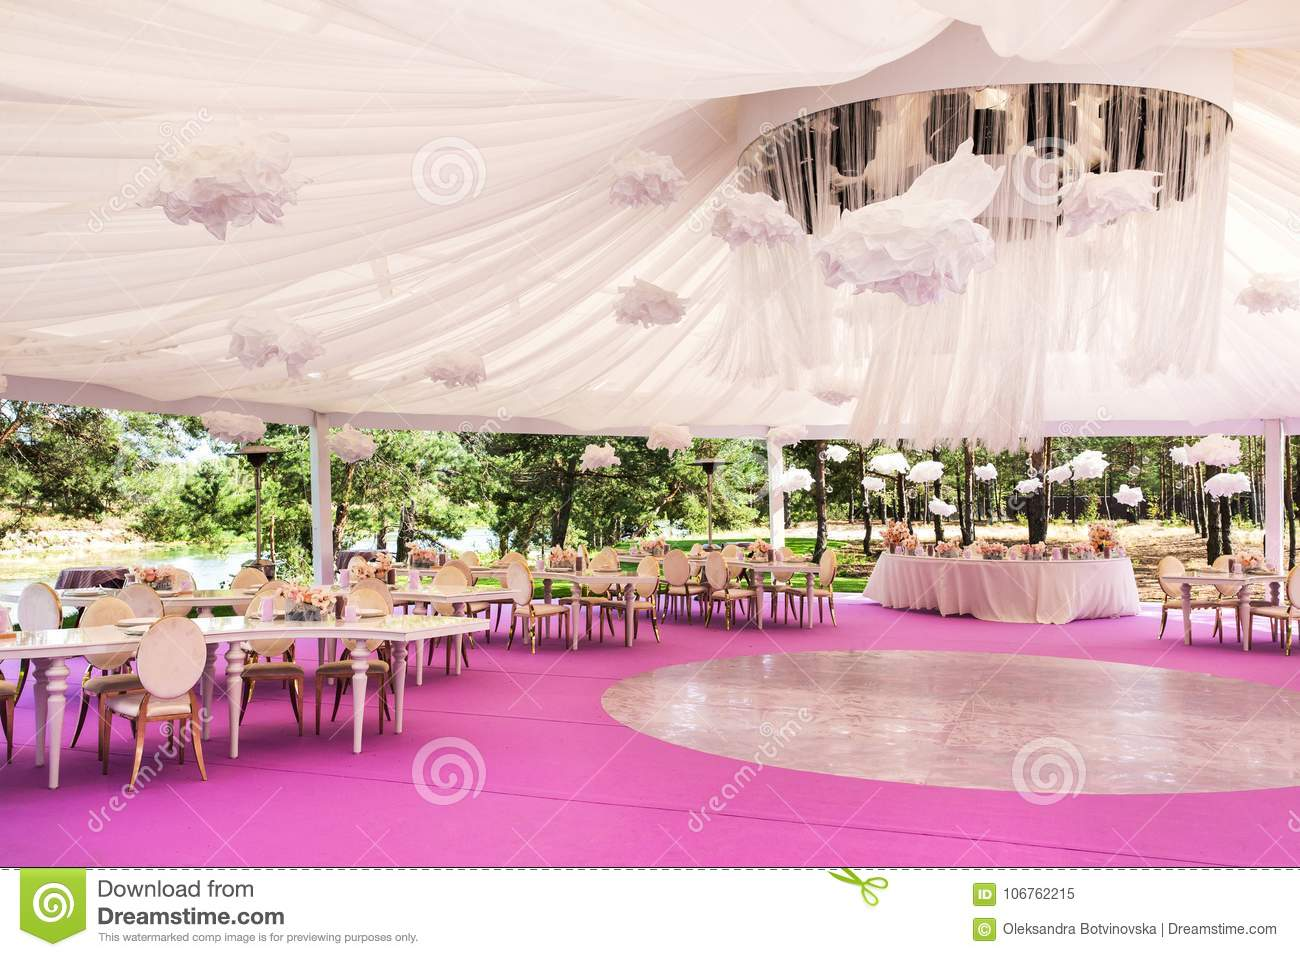 Banquet Hall For A Wedding With A White Dome Stock Image - Image of ...